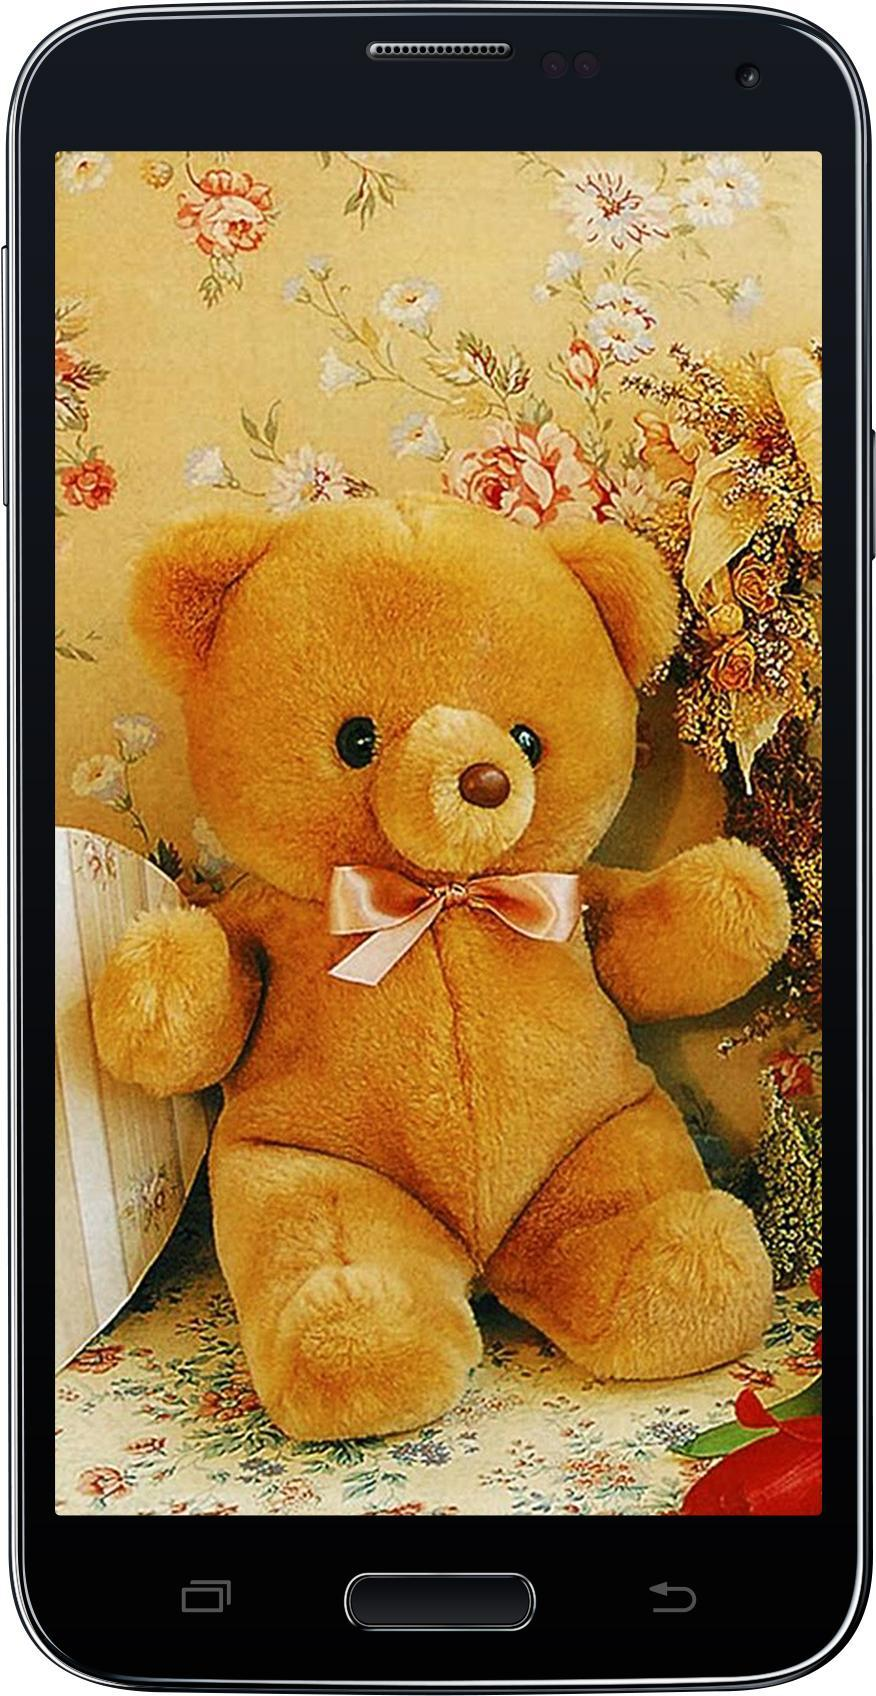 Hd Sweet Teddy Bear Wallpapers Doll For Android Apk Download